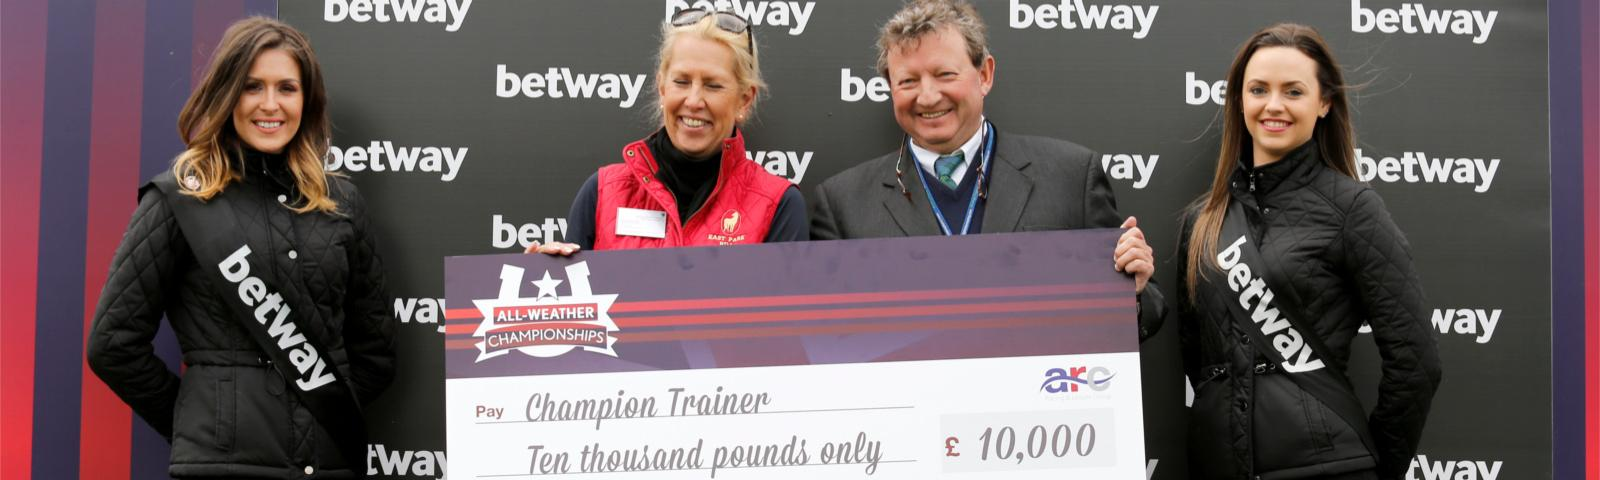 Mark Johnston - All-Weather Championships Champion Trainer in Season 4